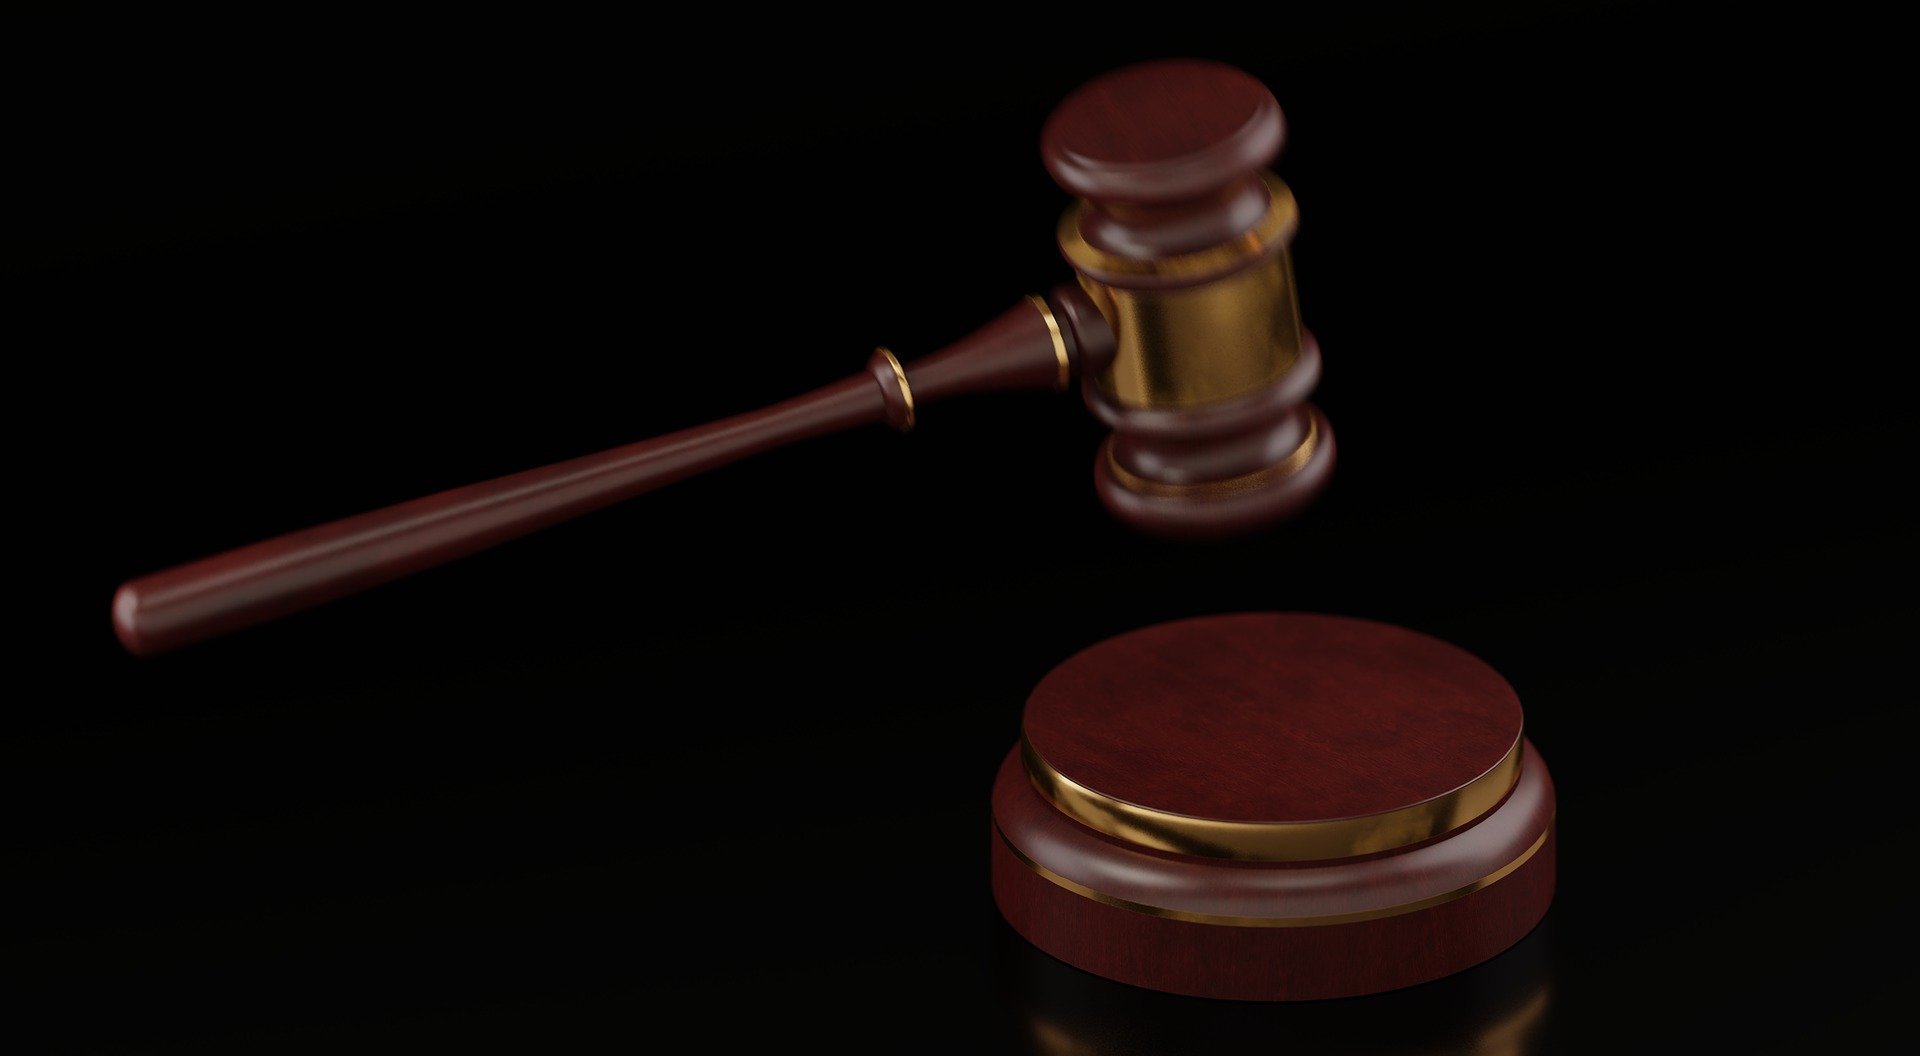 Pictured - A gavel used in the courtroom by a judge   Source: Pixabay